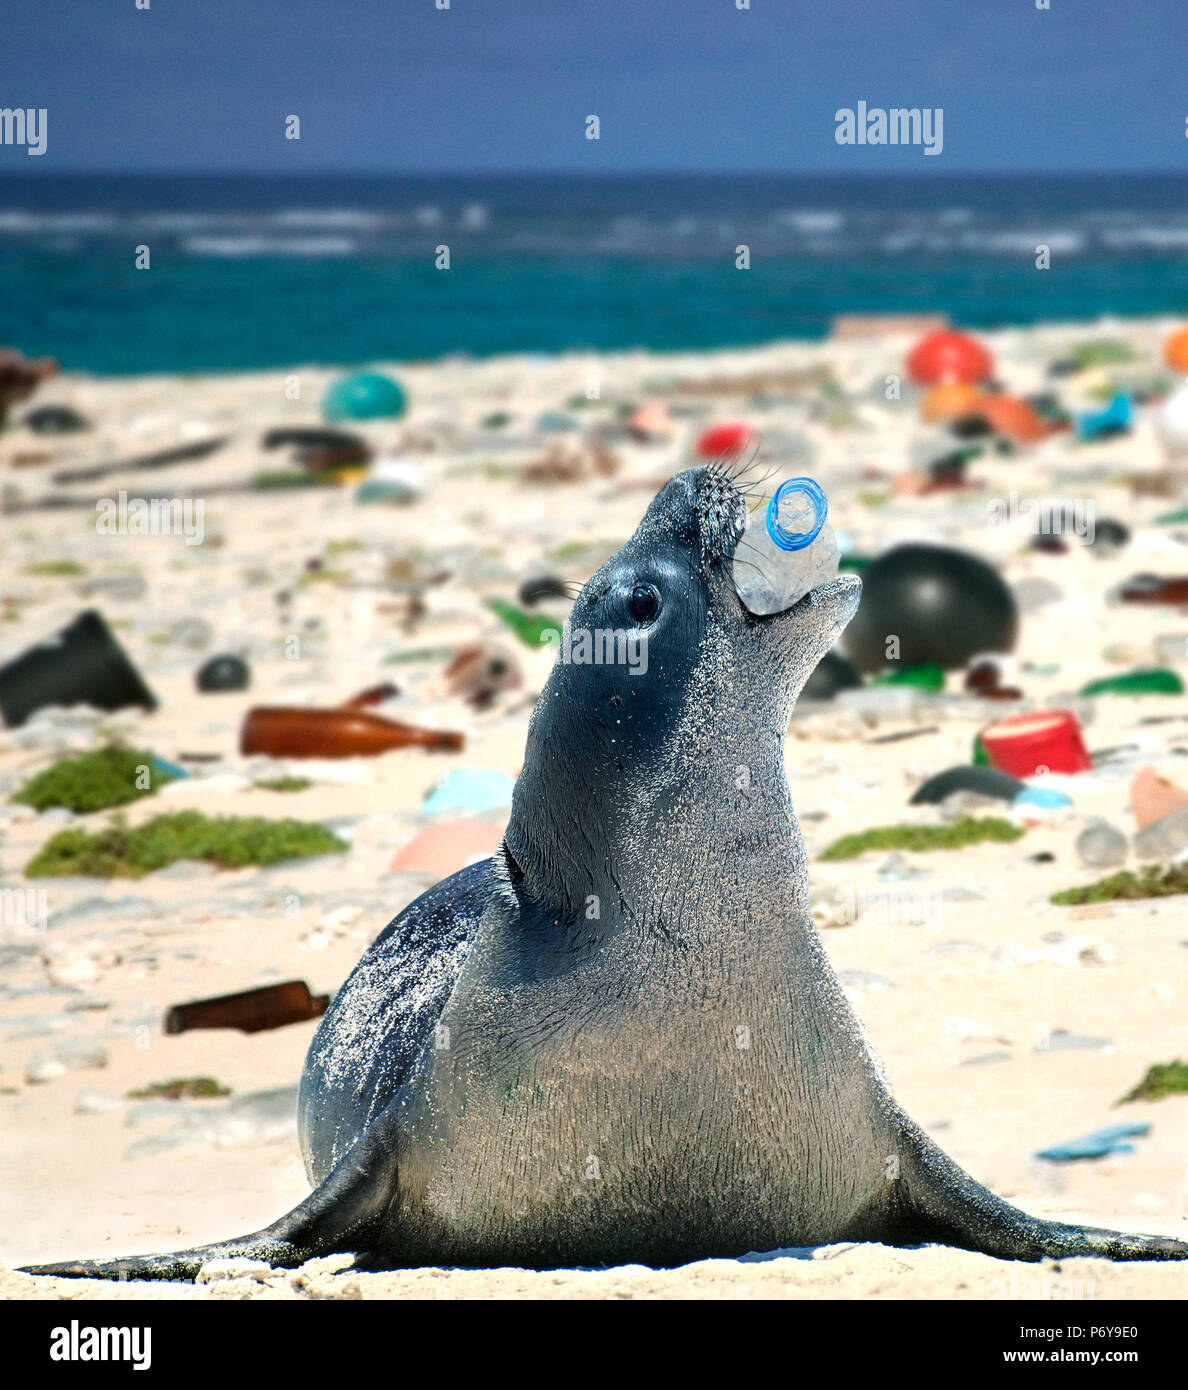 Hawaiian monk seal, Neomonachus schauinslandi, playing with empty plastic bottle on a beach covered with plastic garbage. Stock Photo